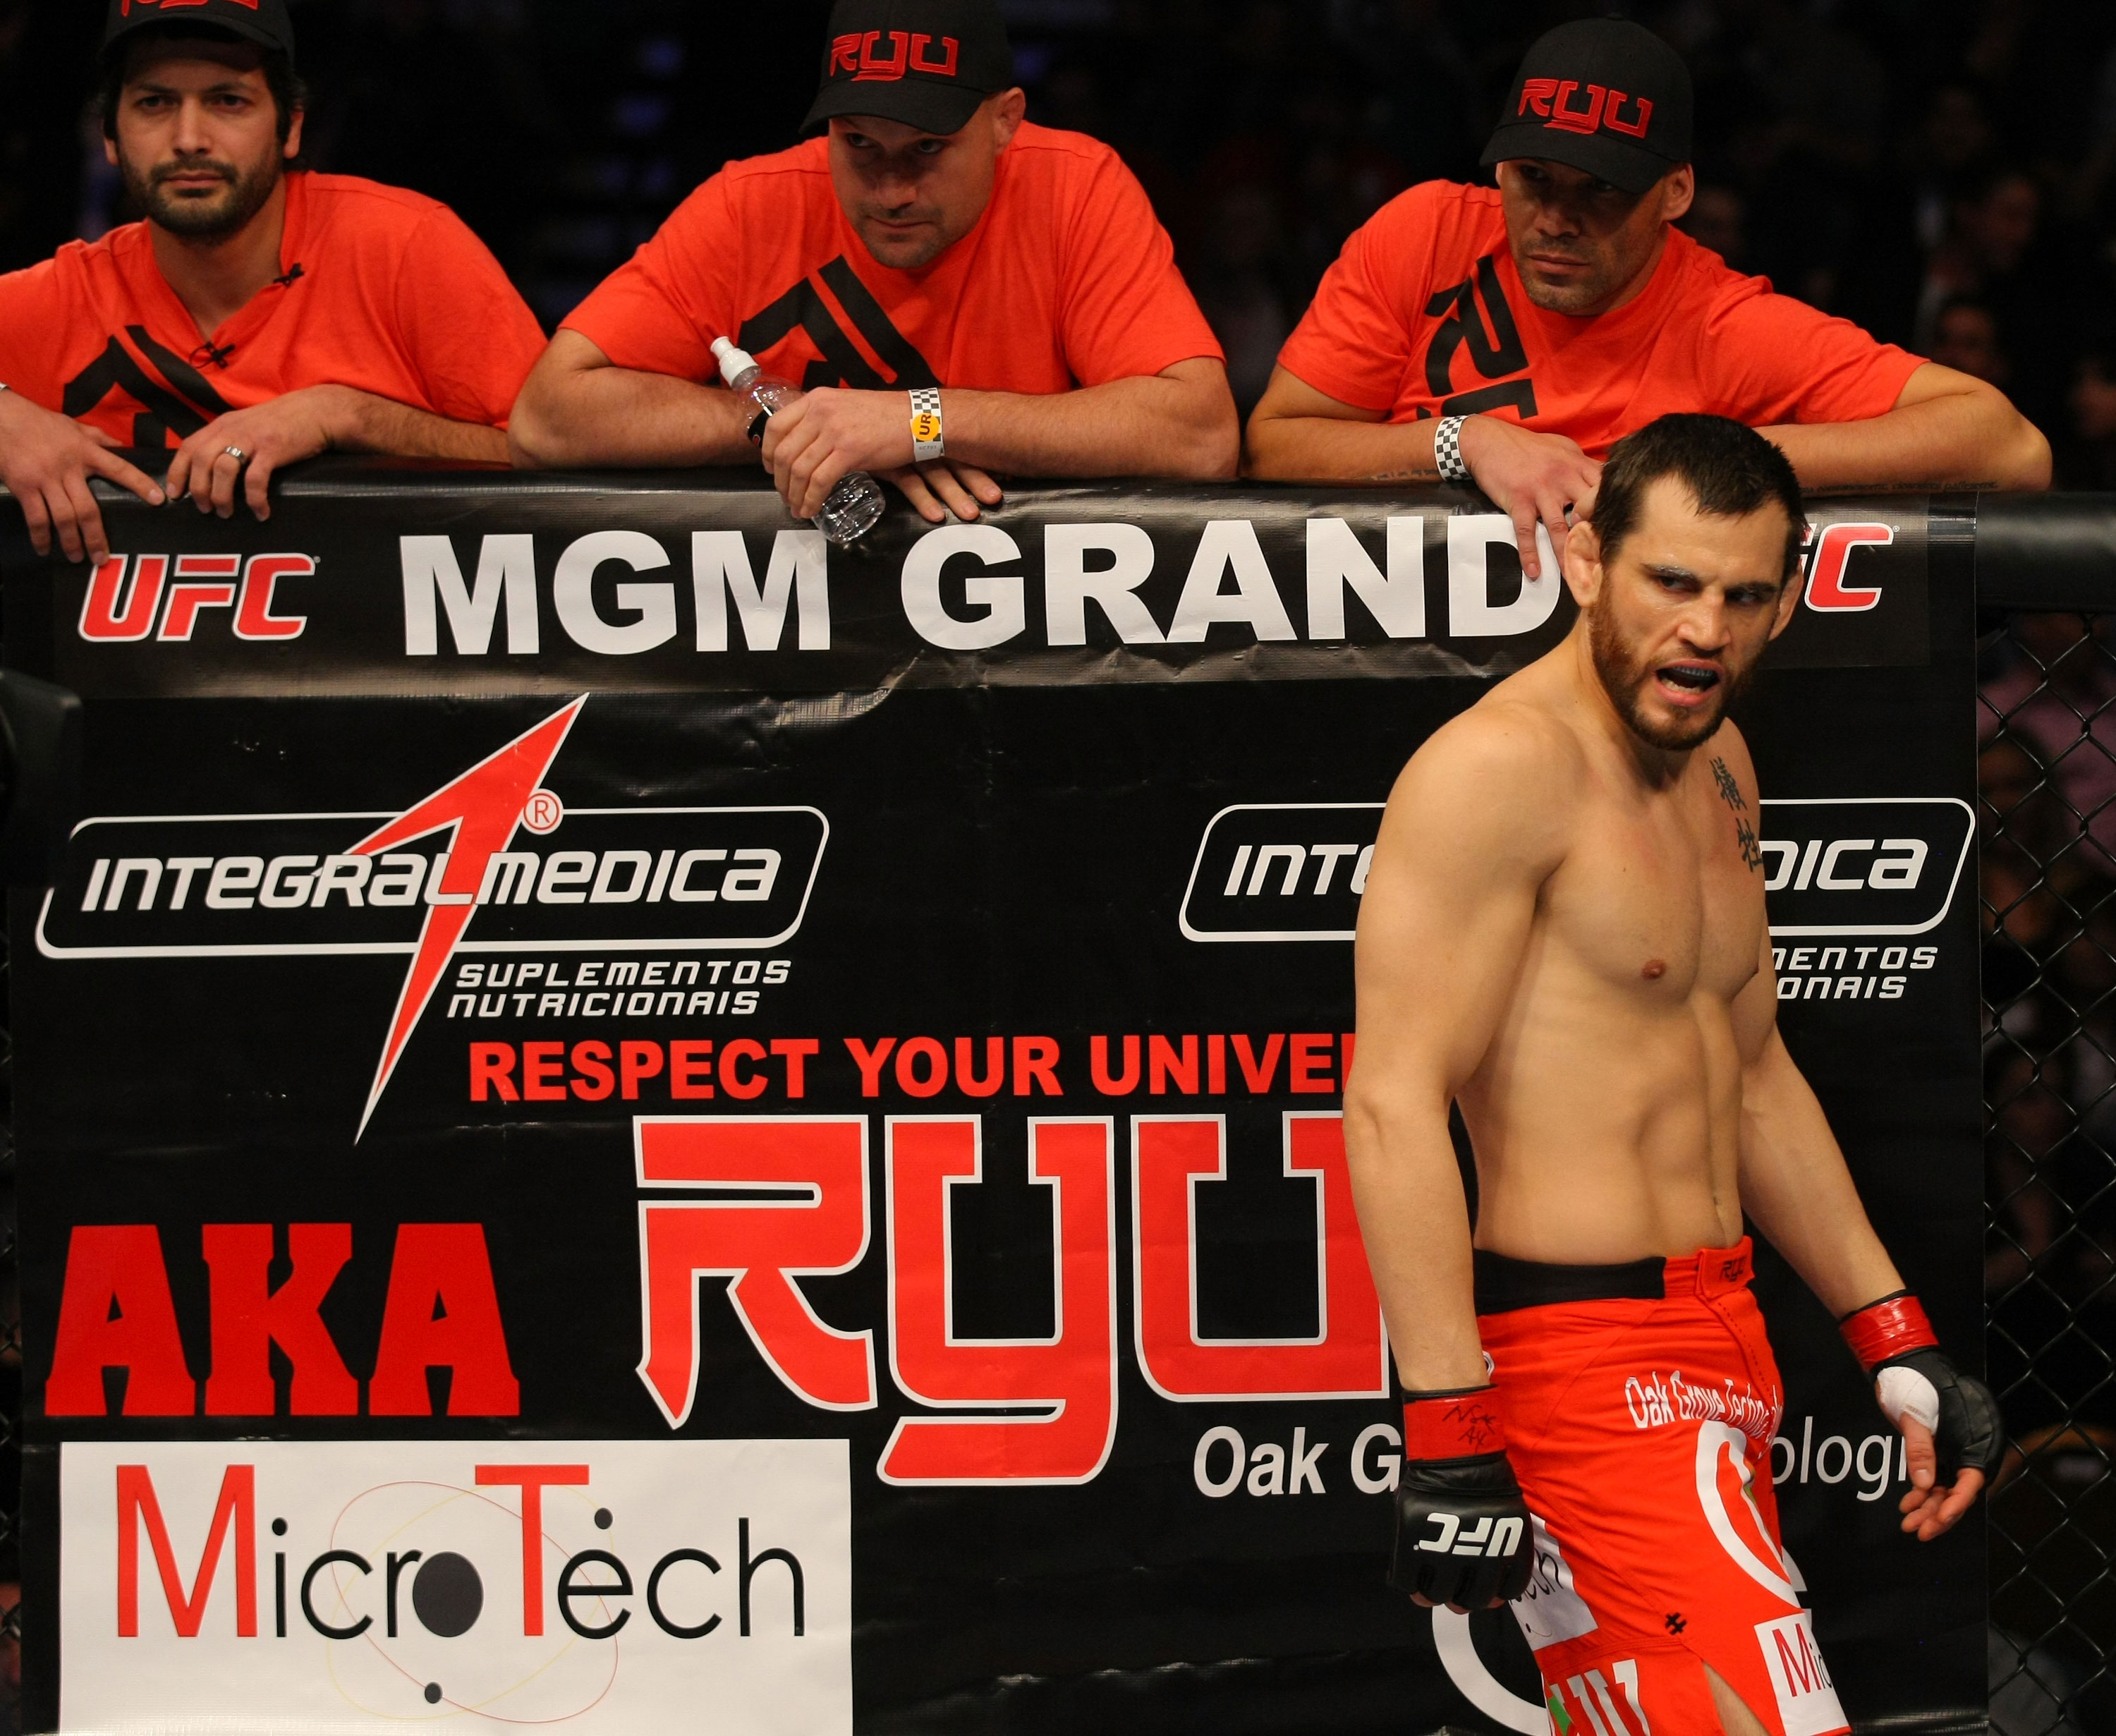 LAS VEGAS, NV - DECEMBER 30:  Jon Fitch is introduced before his fight against Johny Hendricks during the UFC 141 event at the MGM Grand Garden Arena on December 30, 2011 in Las Vegas, Nevada.  (Photo by Donald Miralle/Zuffa LLC/Zuffa LLC via Getty Images) *** Local Caption *** Jon Fitch